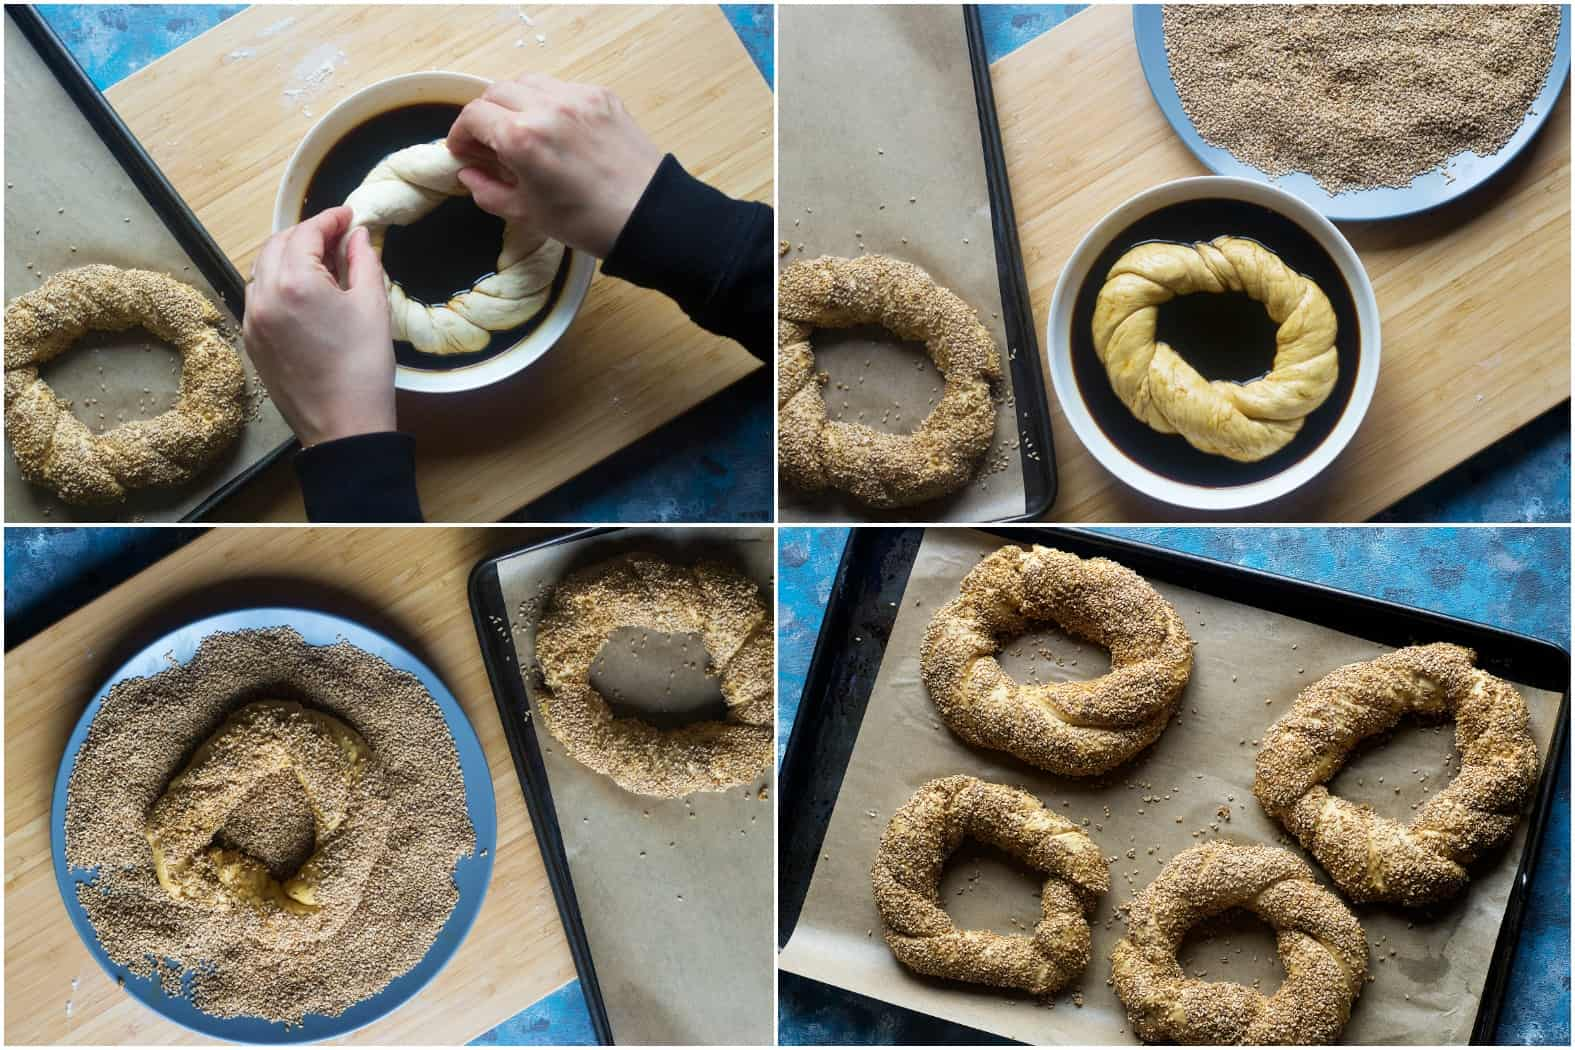 Dip each twisted dough in the molasses and water combination and make sure it's covered on both sides. Then dip them in toasted sesame seeds and ensure they are fully coated.